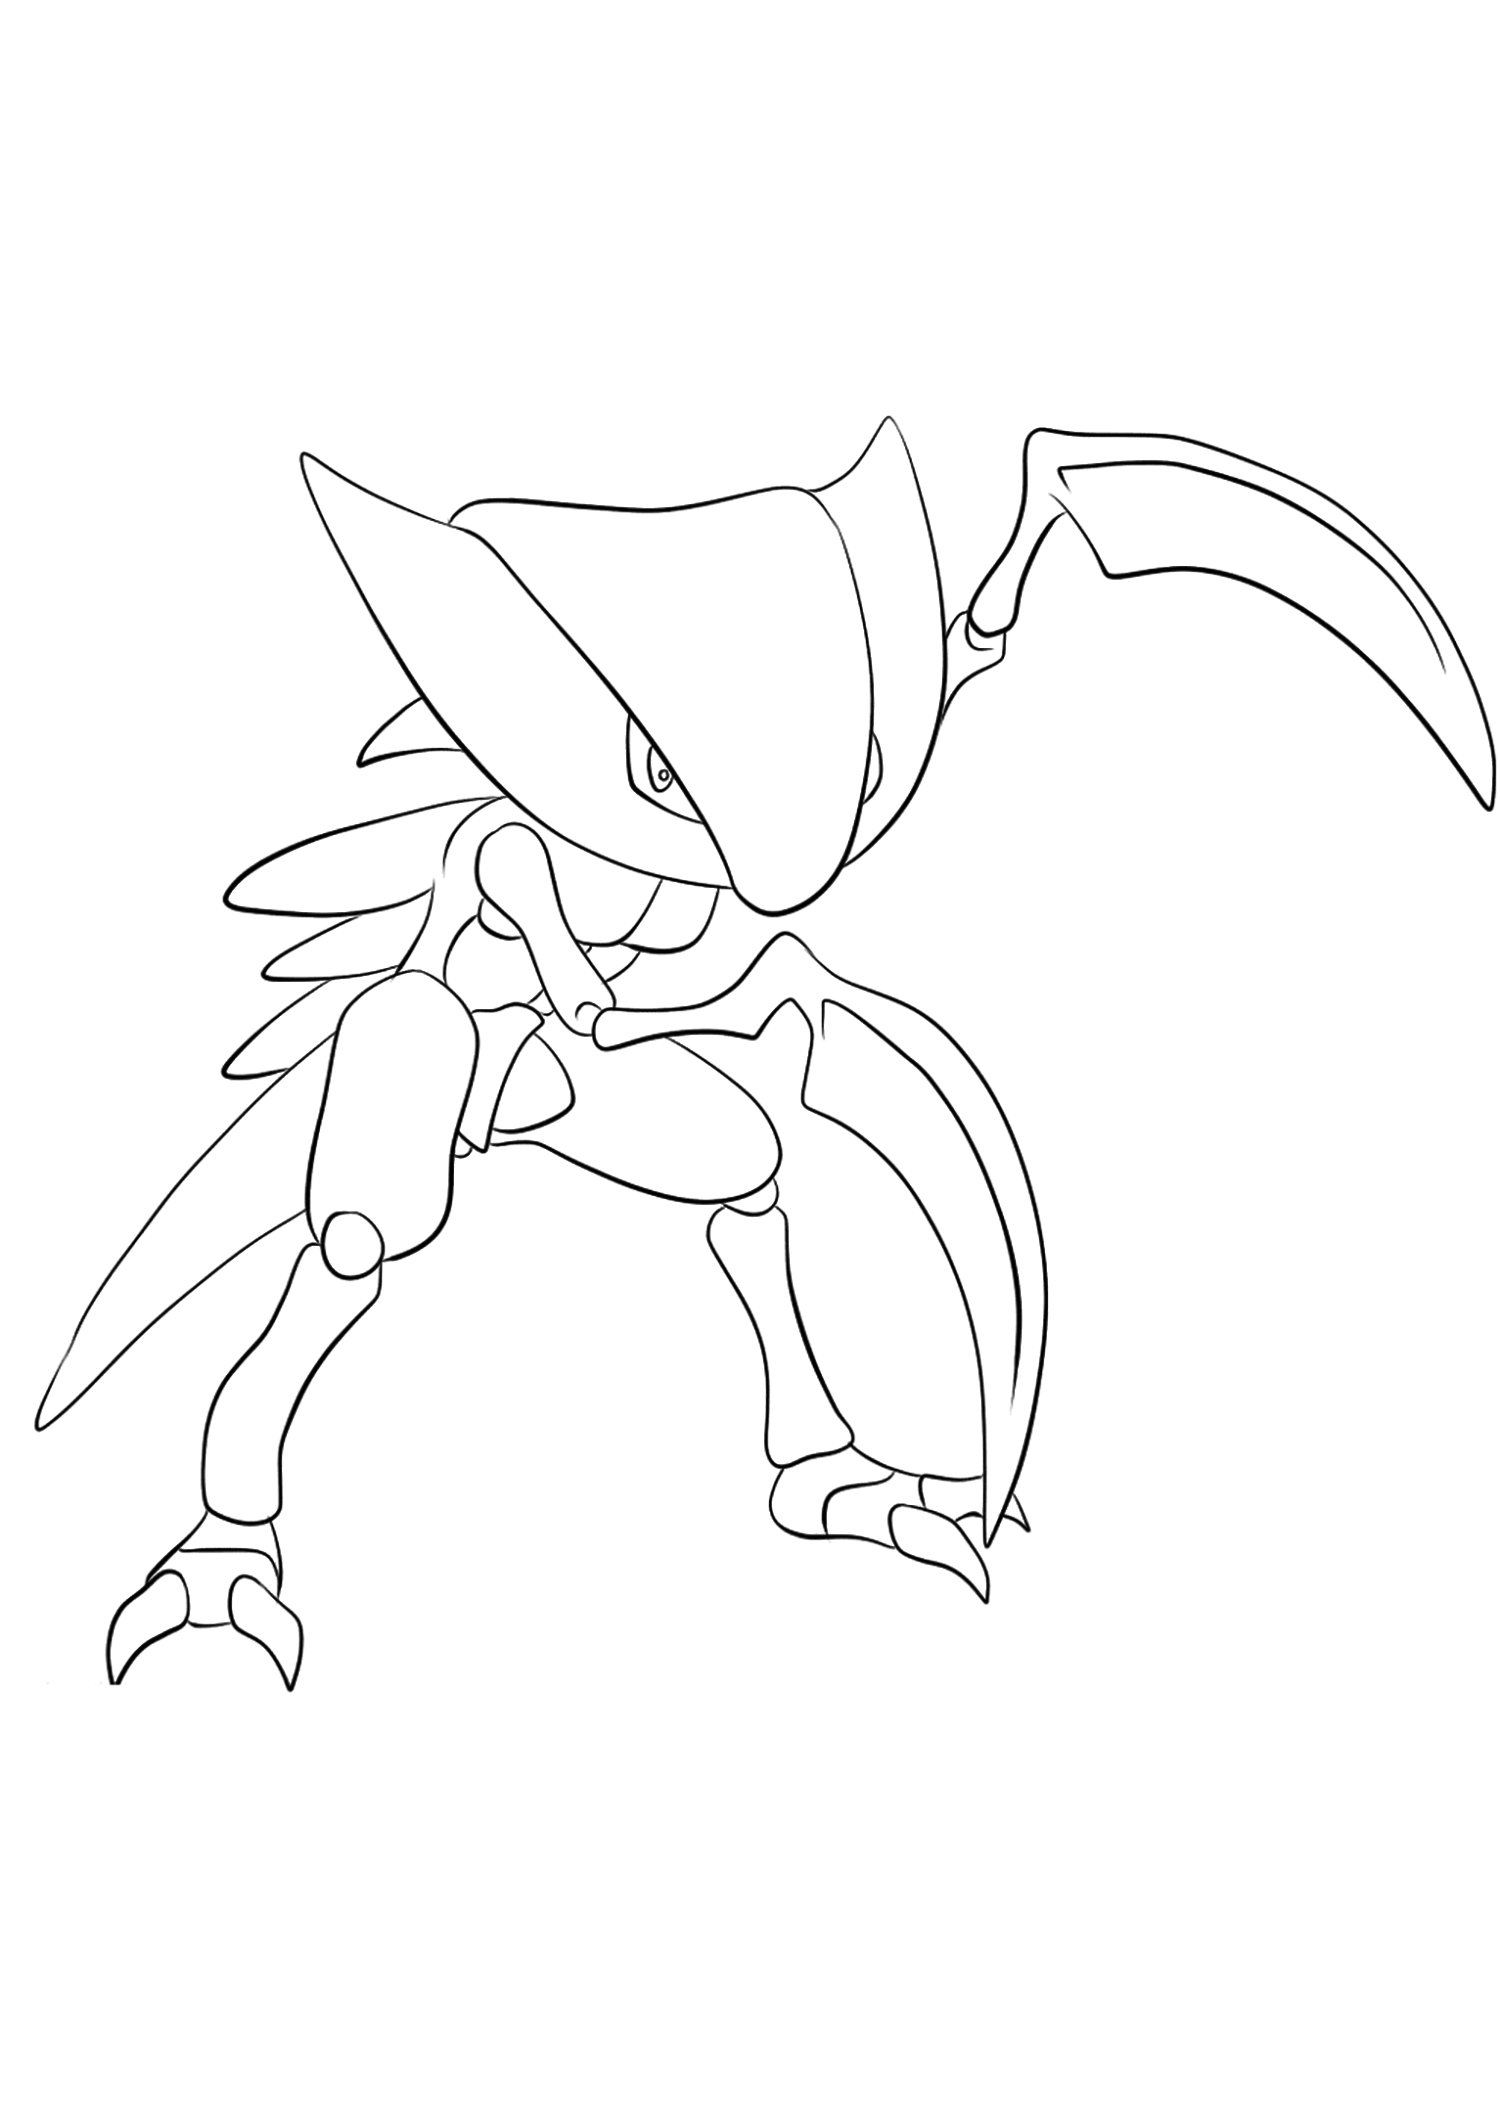 Kabutops (No.141)Coloriage de Kabutops (Kabutops), Pokémon de Génération I, de type : Roche et EauOriginal image credit: Pokemon linearts by Lilly Gerbil on Deviantart.Permission:  All rights reserved © Pokemon company and Ken Sugimori.